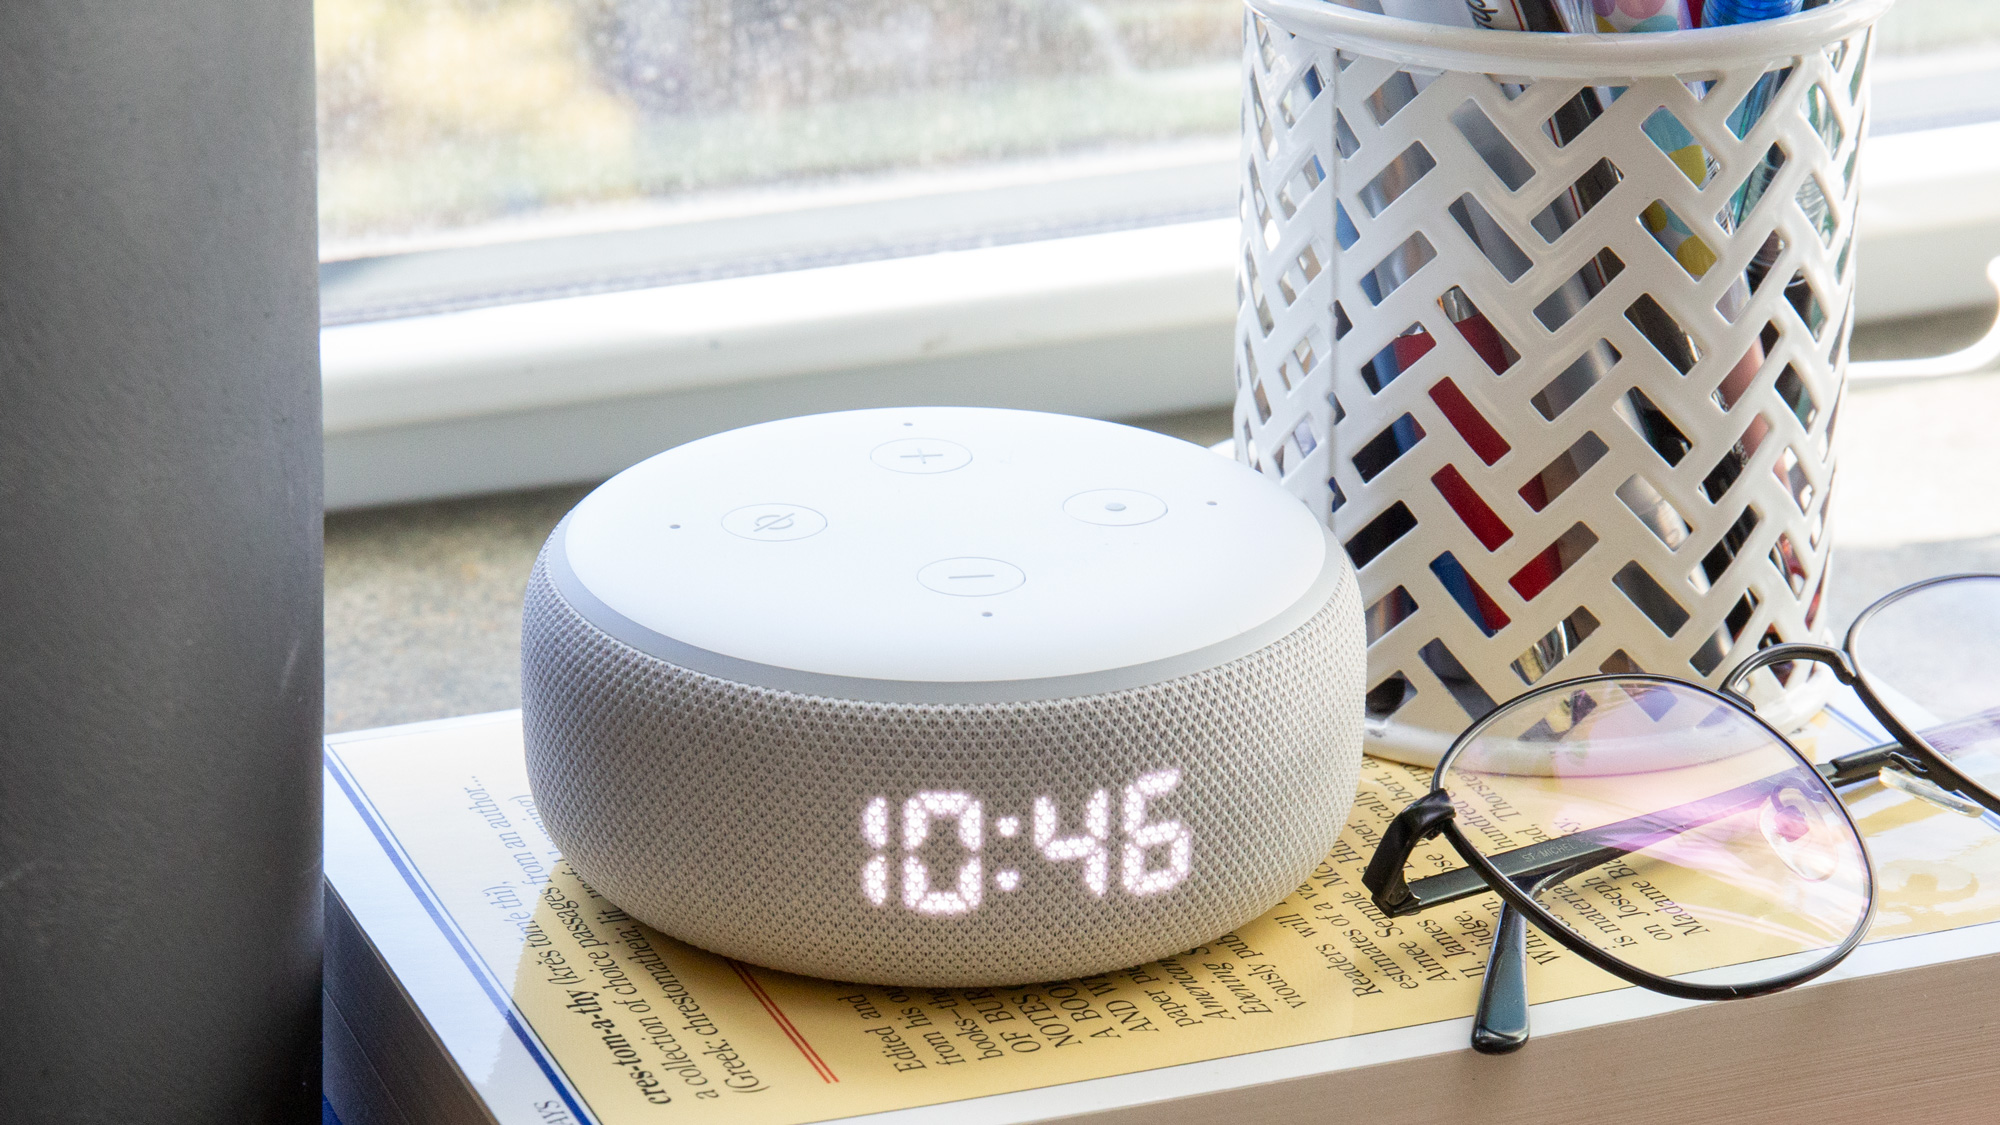 best cheap smart home devices: Amazon Echo Dot with Clock